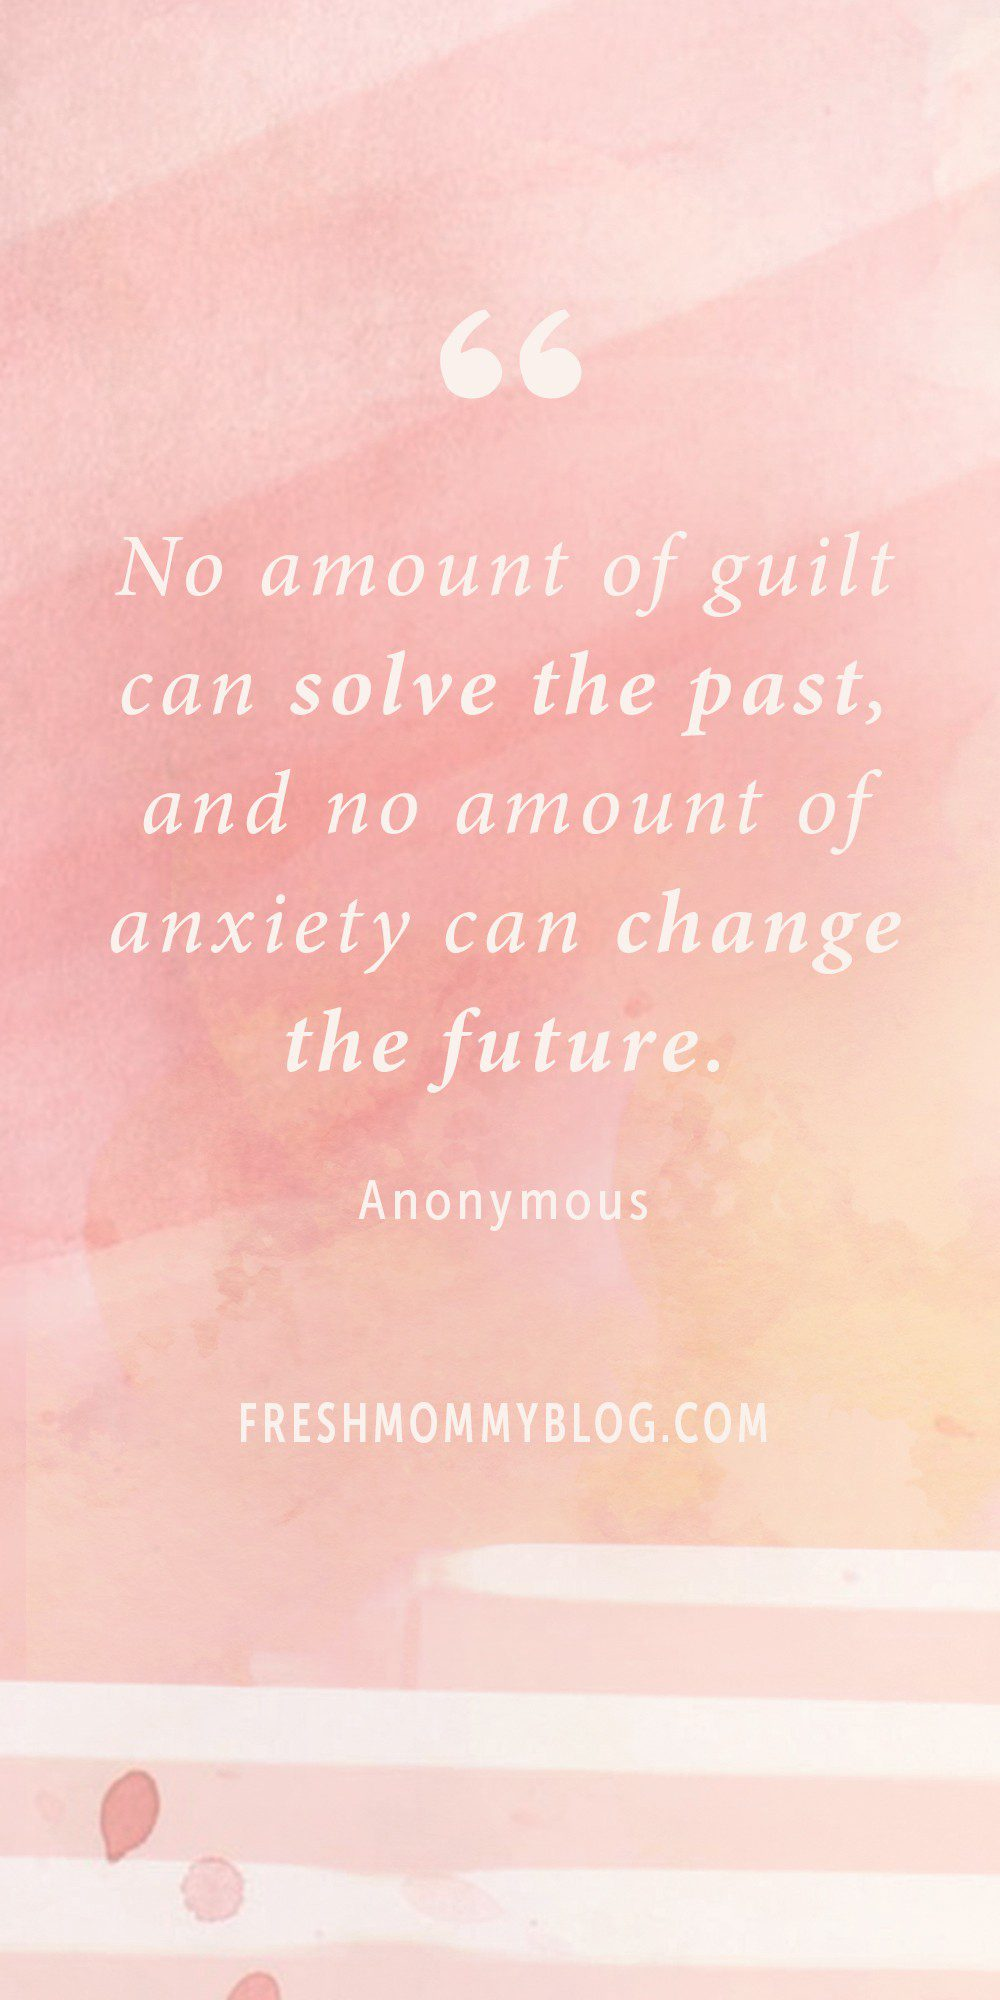 """No amount of guilt can solve the past, and no amount of anxiety can change the future."" Anonymous 